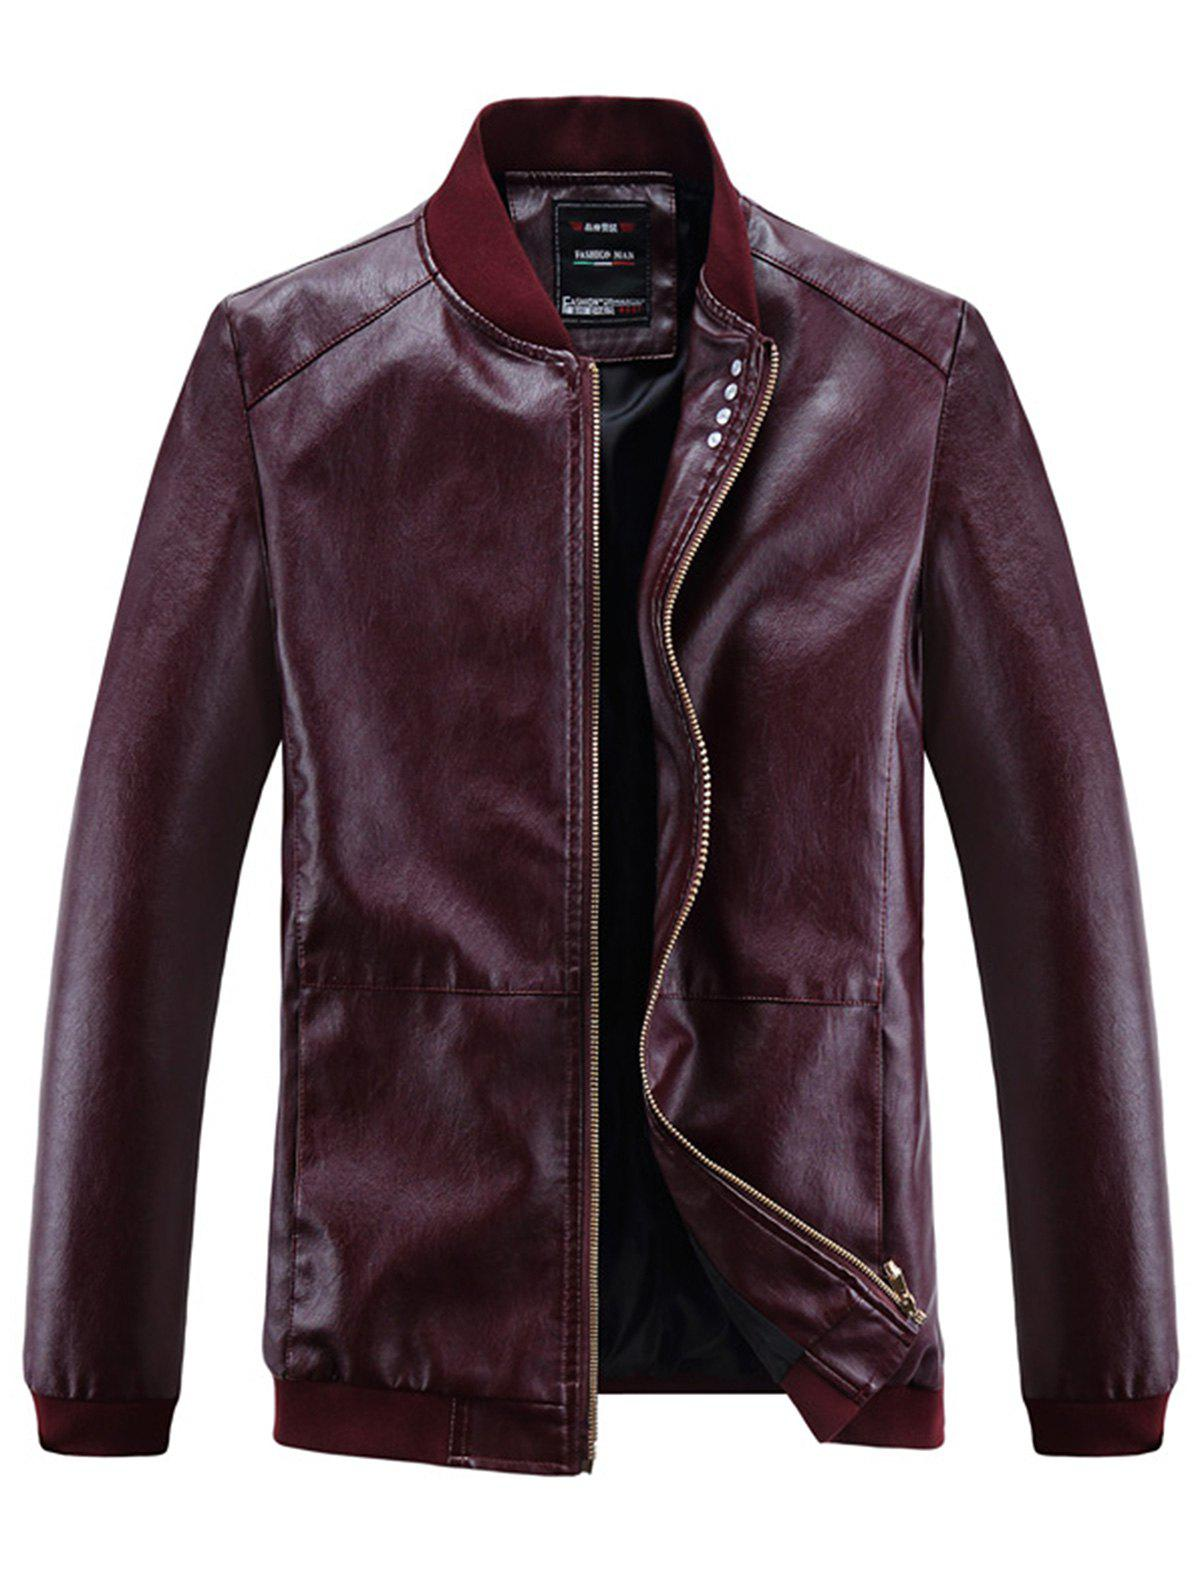 Zip Up Buttons Embellished PU Leather Jacket floral rivet embellished zip up pu leather jacket